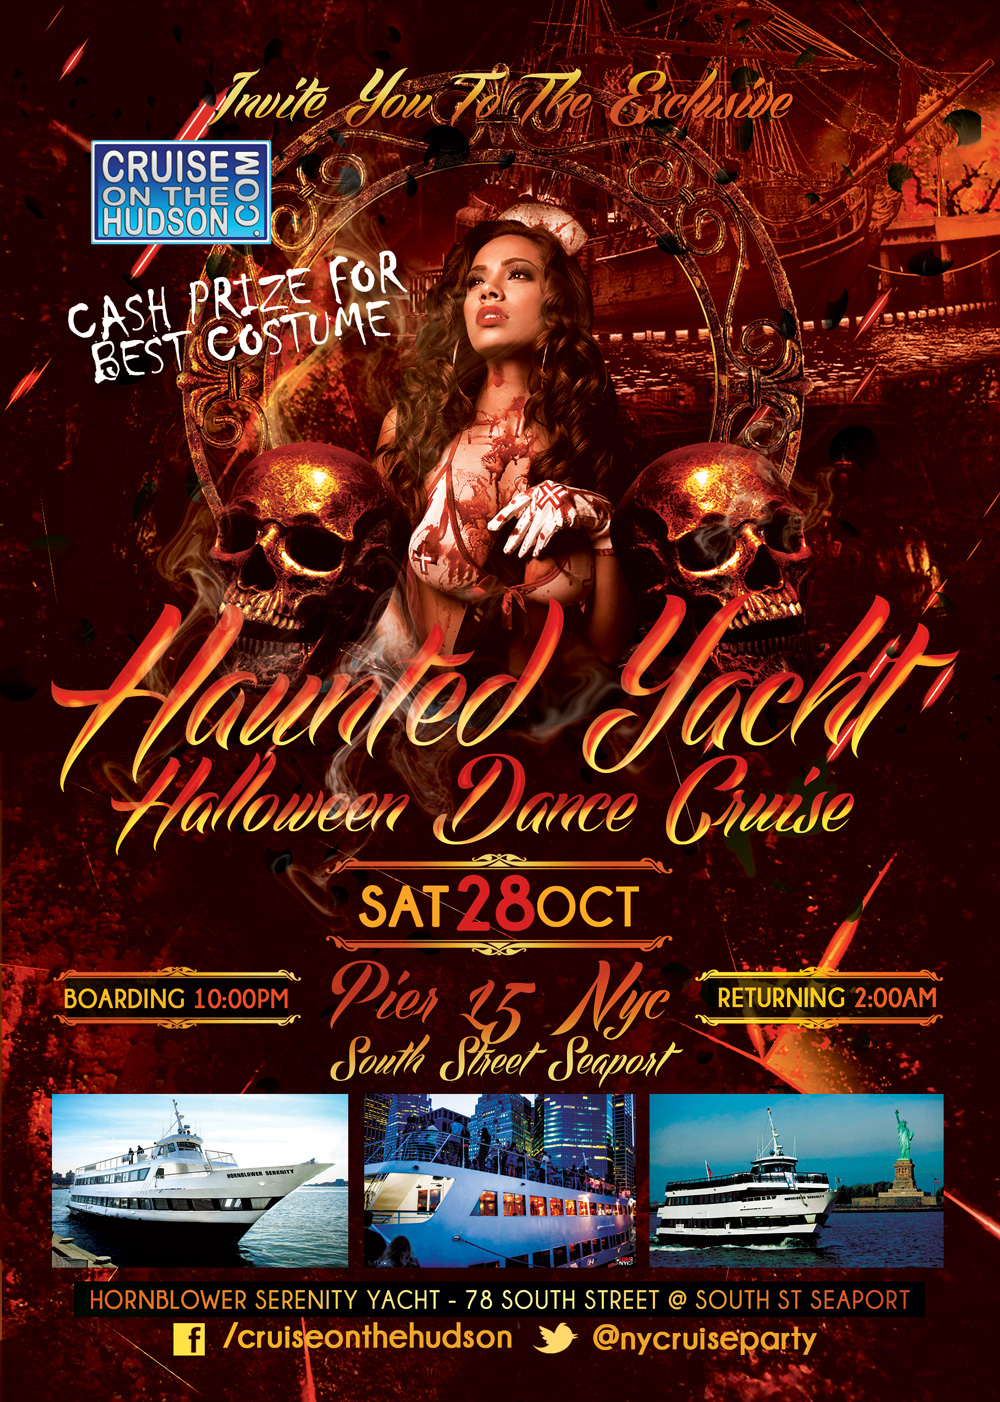 Haunted Yacht Halloween Dance Cruise NYC Hornblower Serenity Yacht